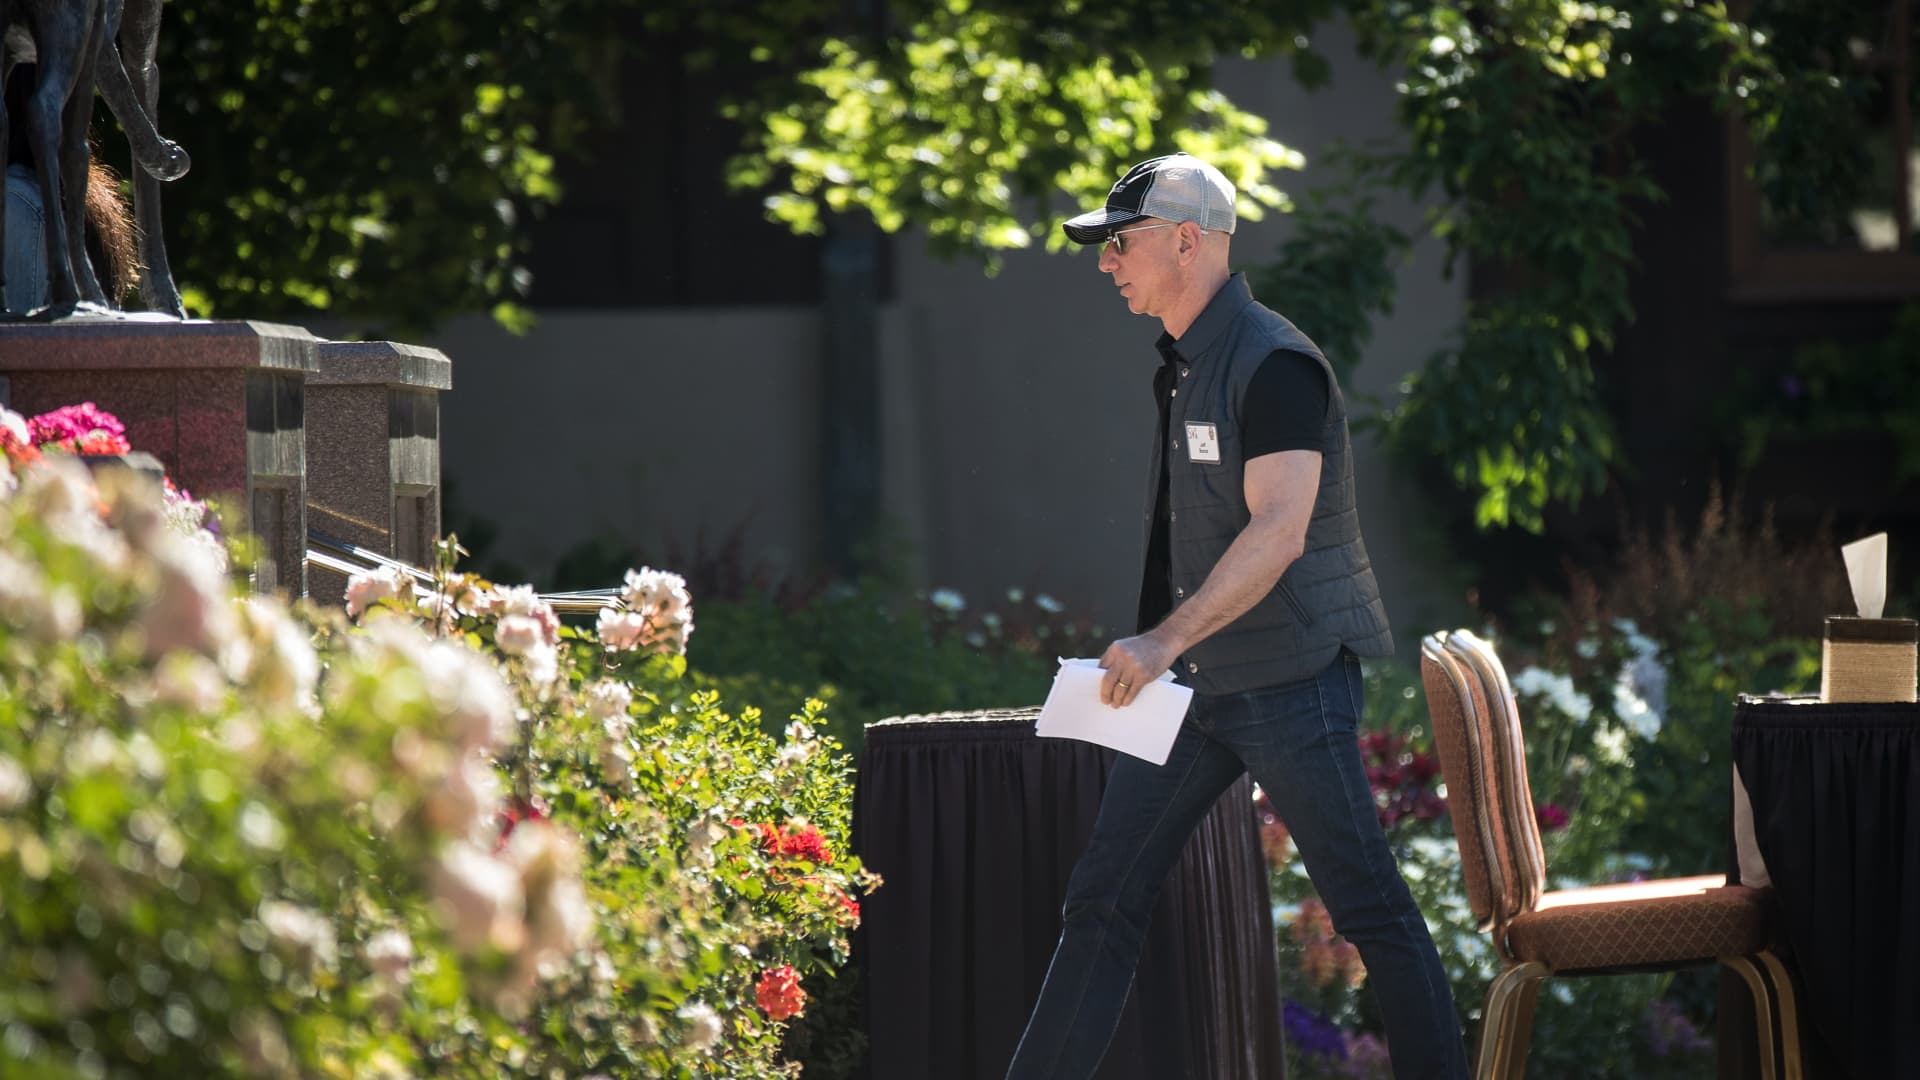 Jeff Bezos, chief executive officer of Amazon, arrives to deliver a keynote speech at the annual Allen & Company Sun Valley Conference, July 12, 2018 in Sun Valley, Idaho.